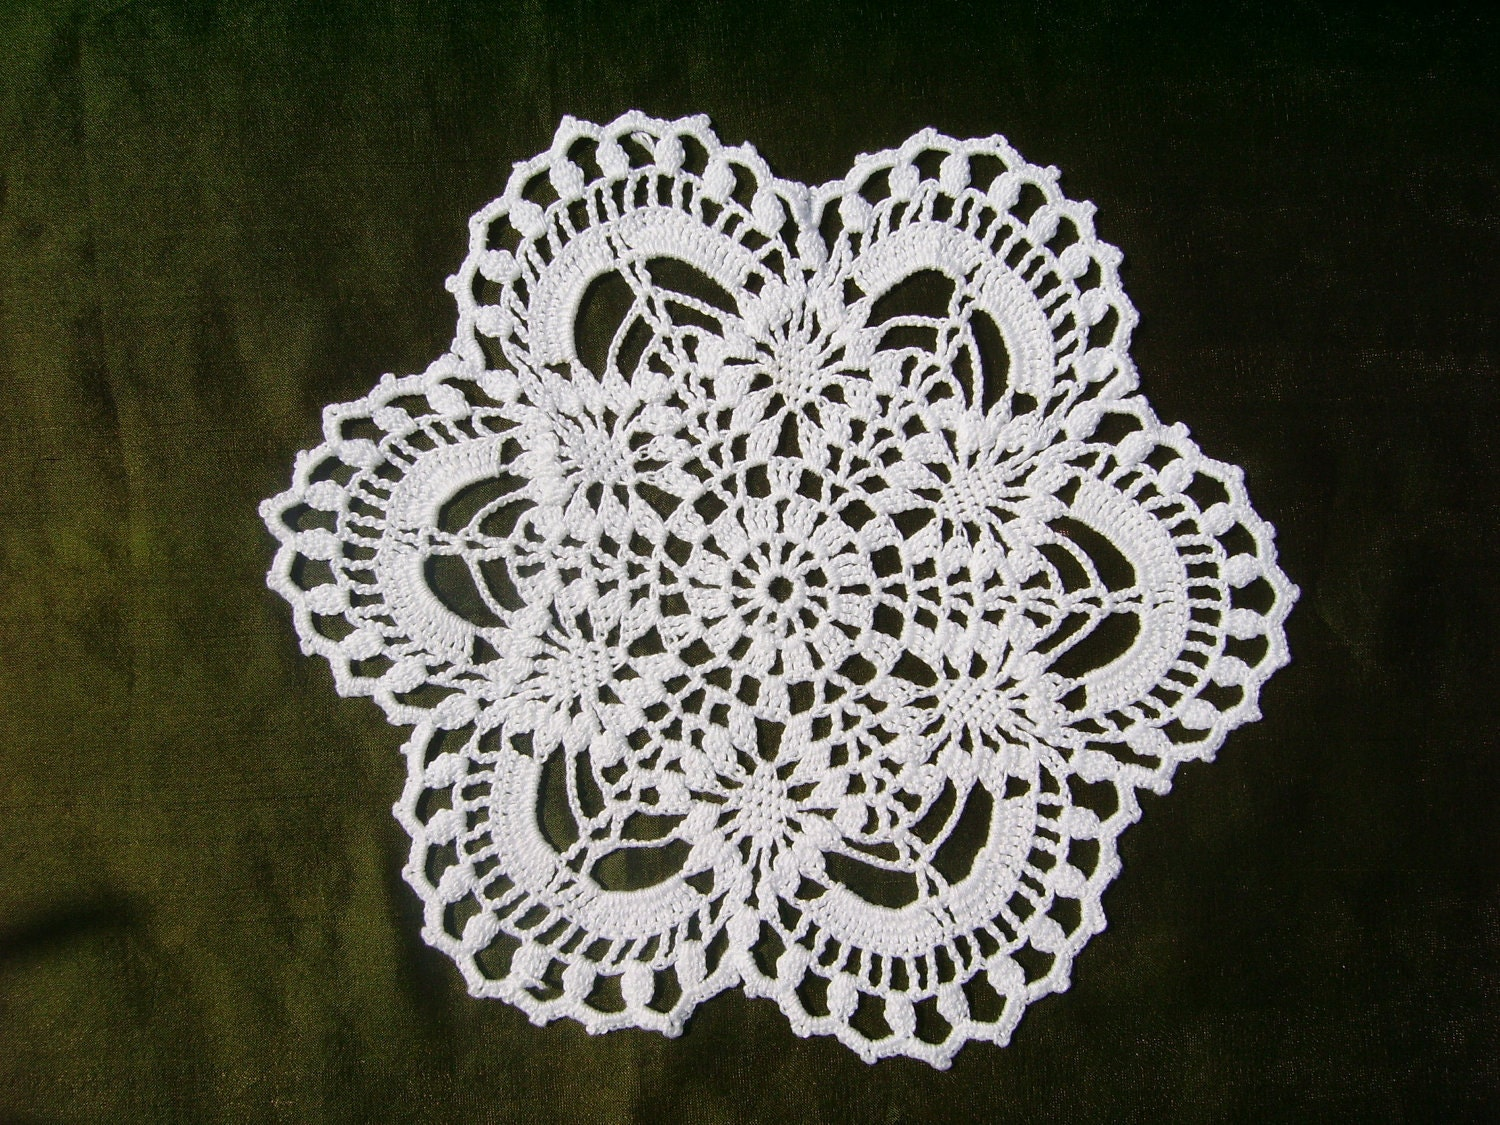 Crocheting Doilies : Small crochet doily white doilies round 9 inches by kroshetmania